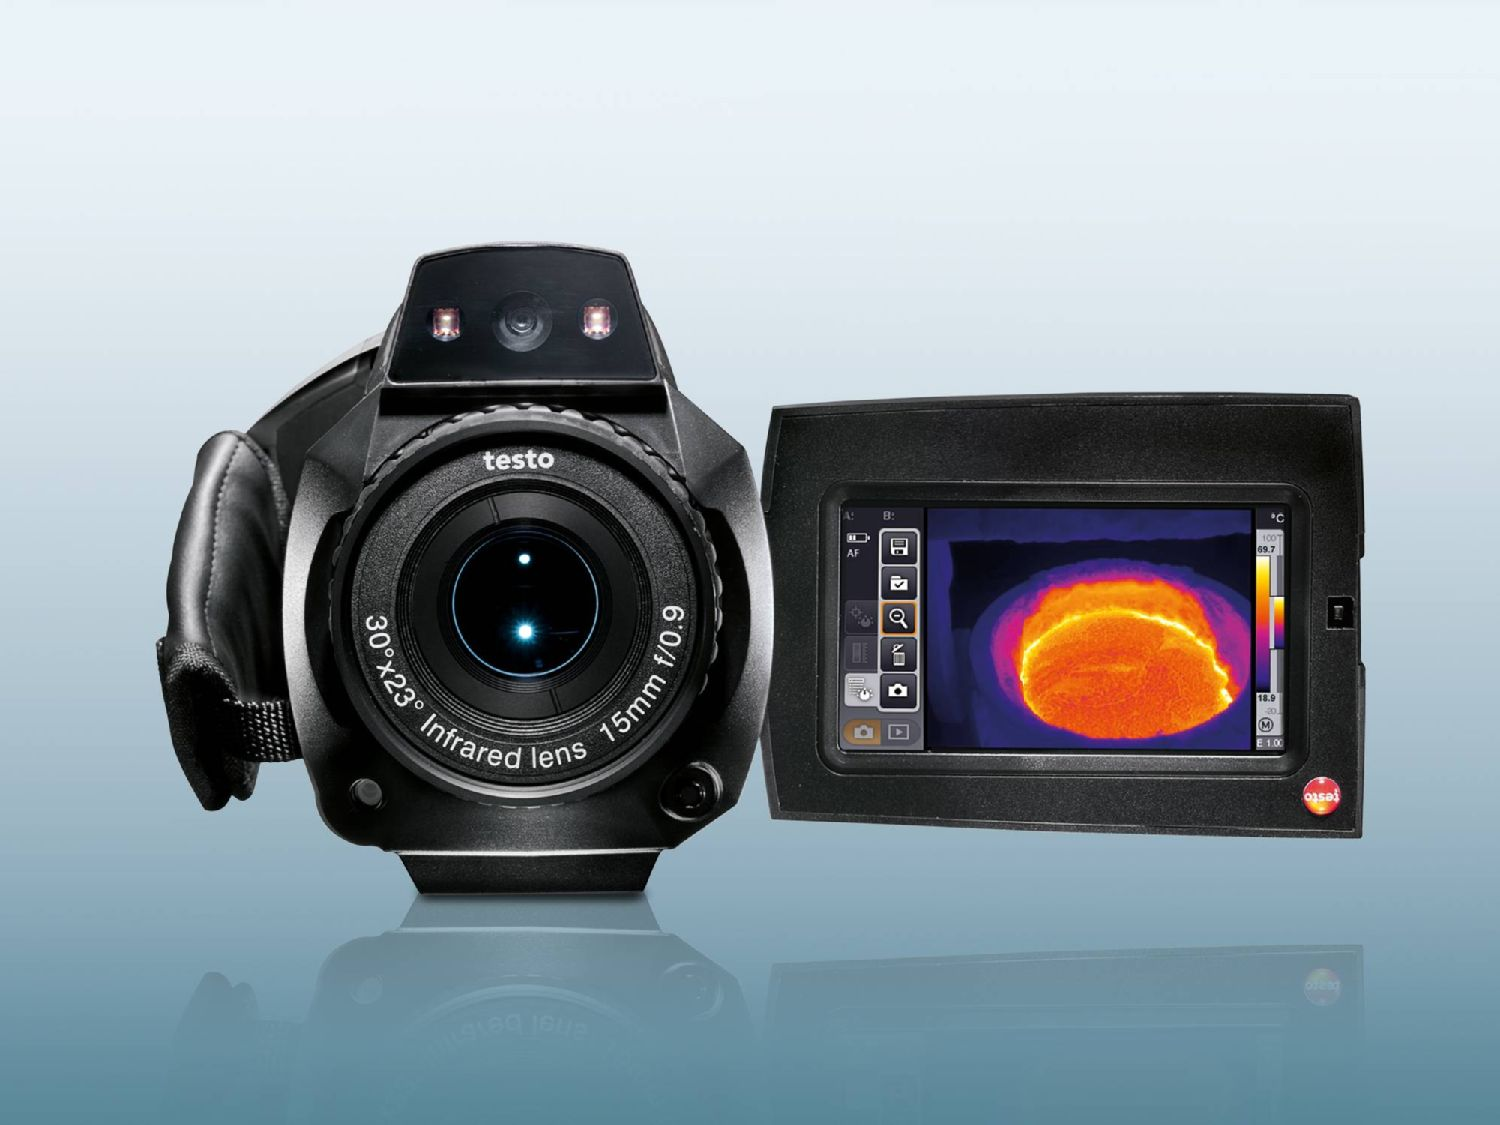 Thermal imager testo 885